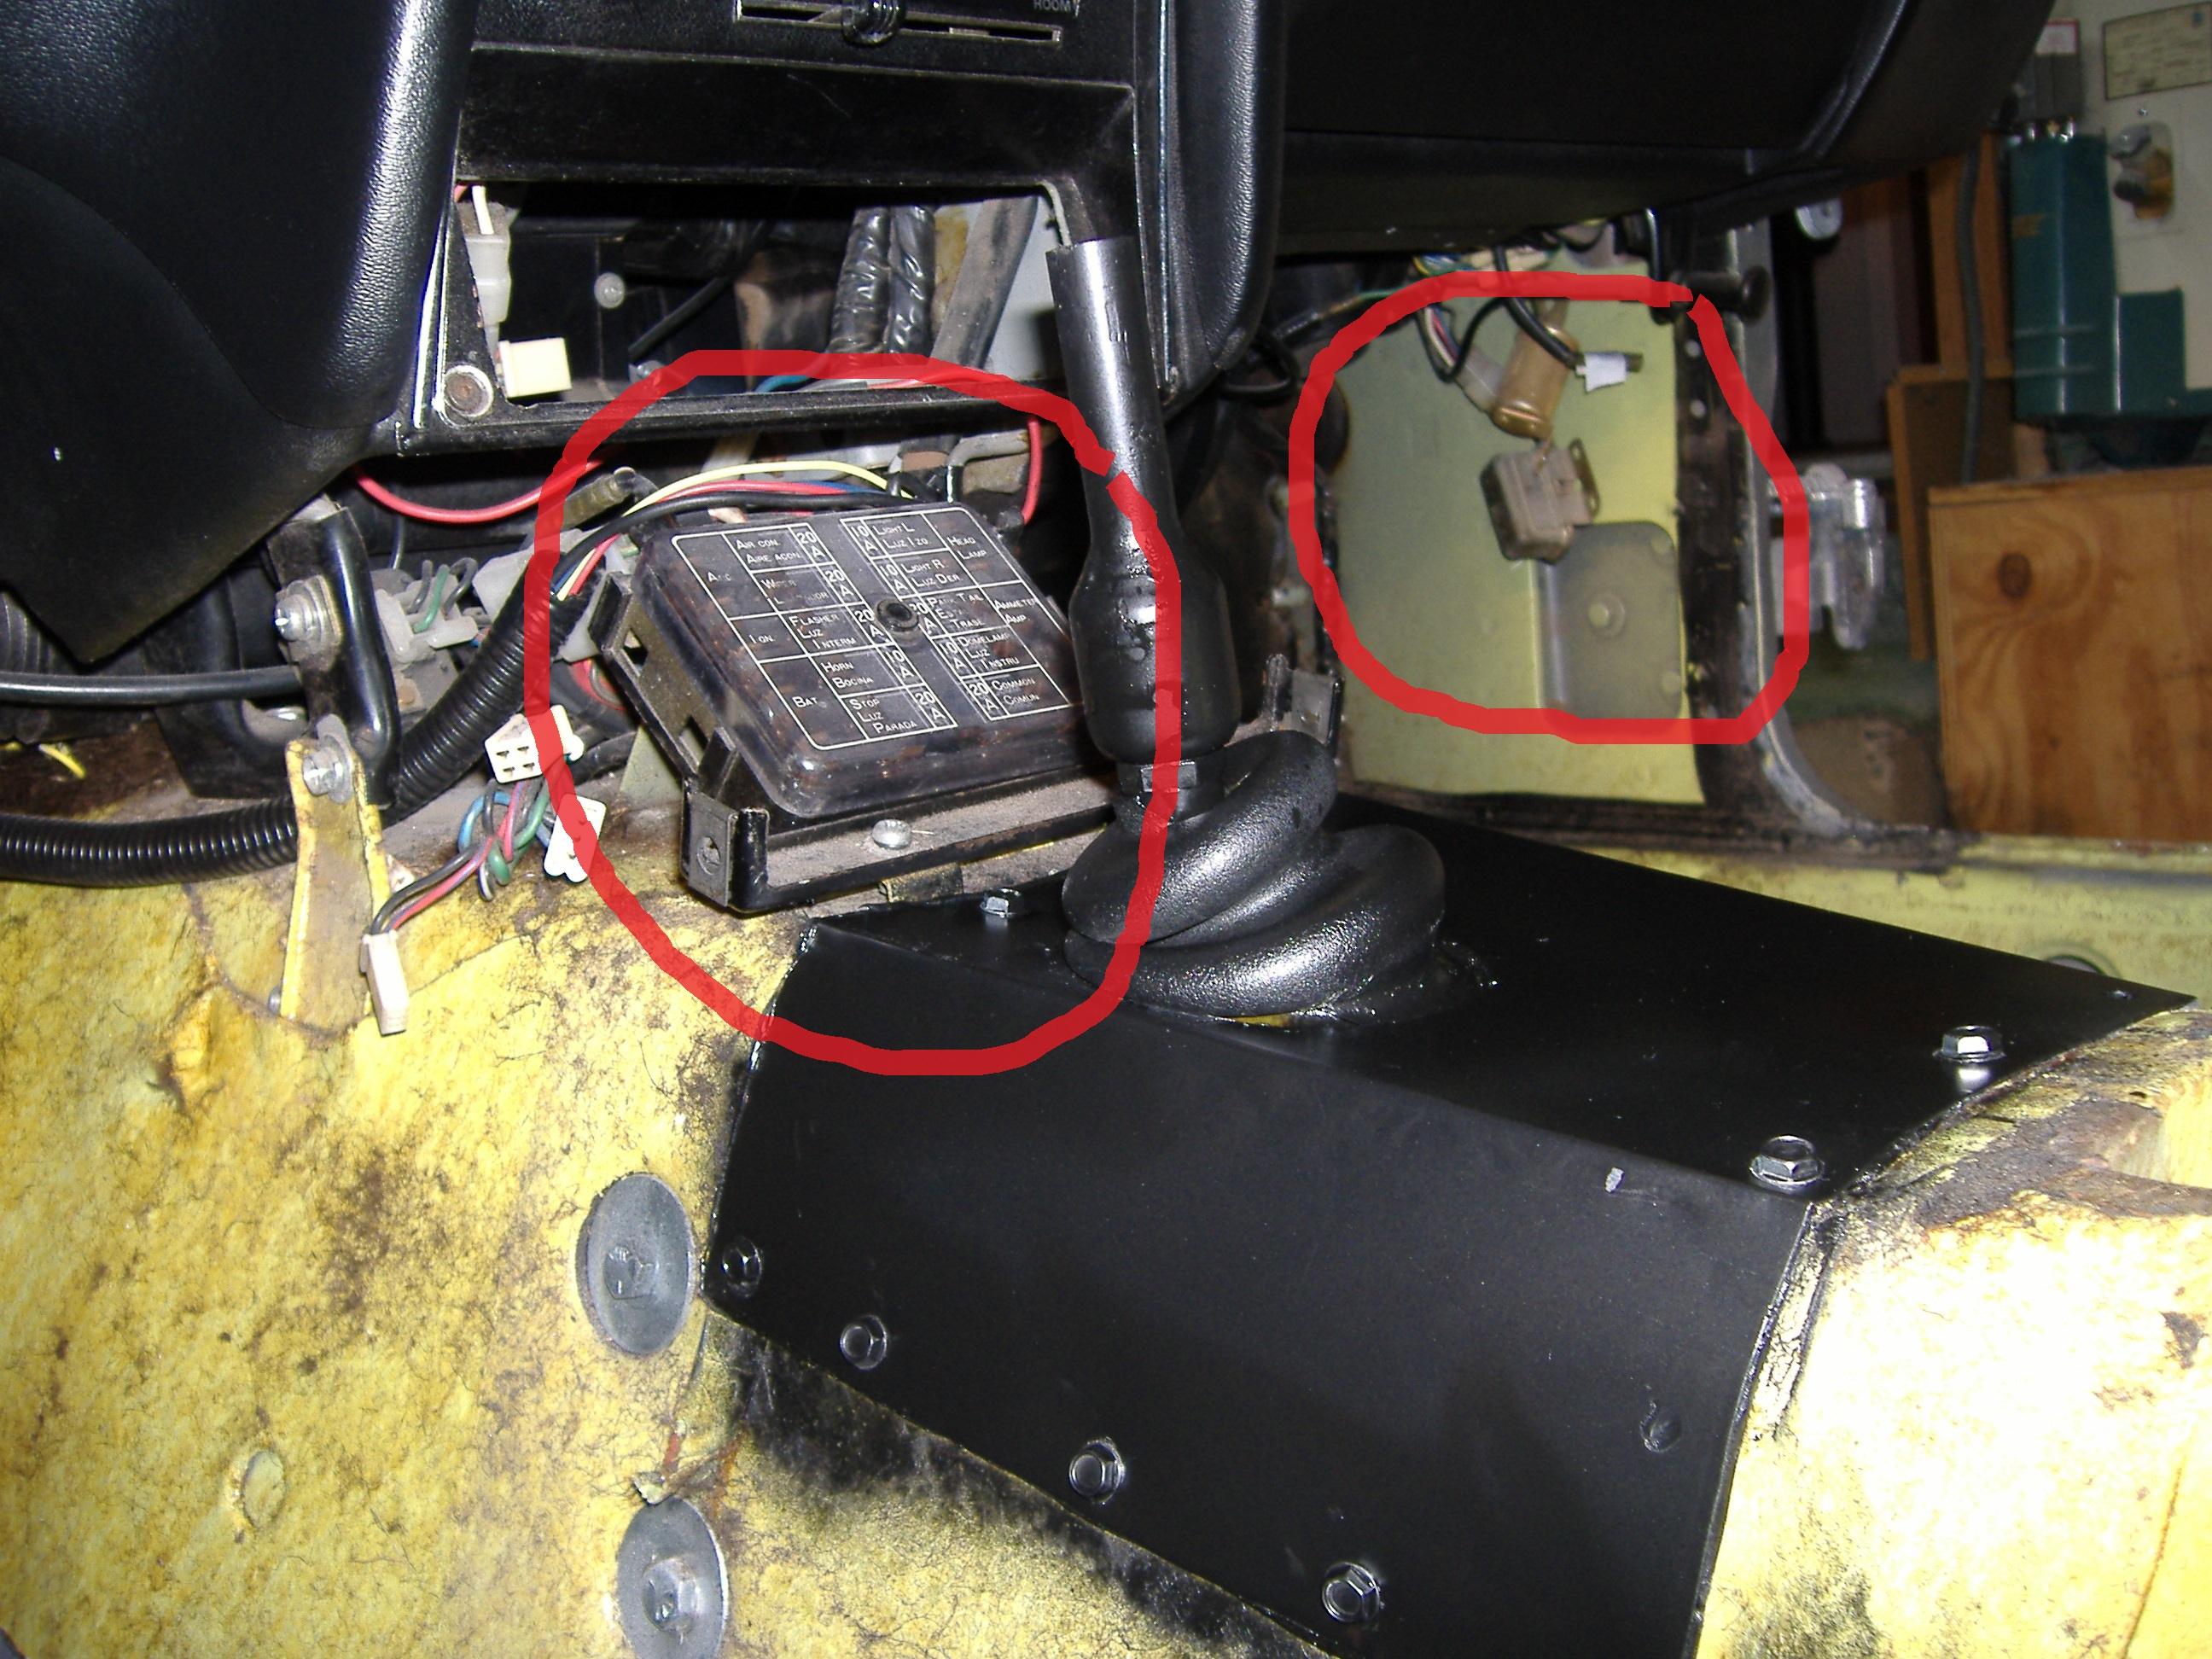 240z Lost All Electrical Power Nissan L6 Forum Hybridz Car Fuse Box Melted Post 178 061258300 1298840119 Thumb